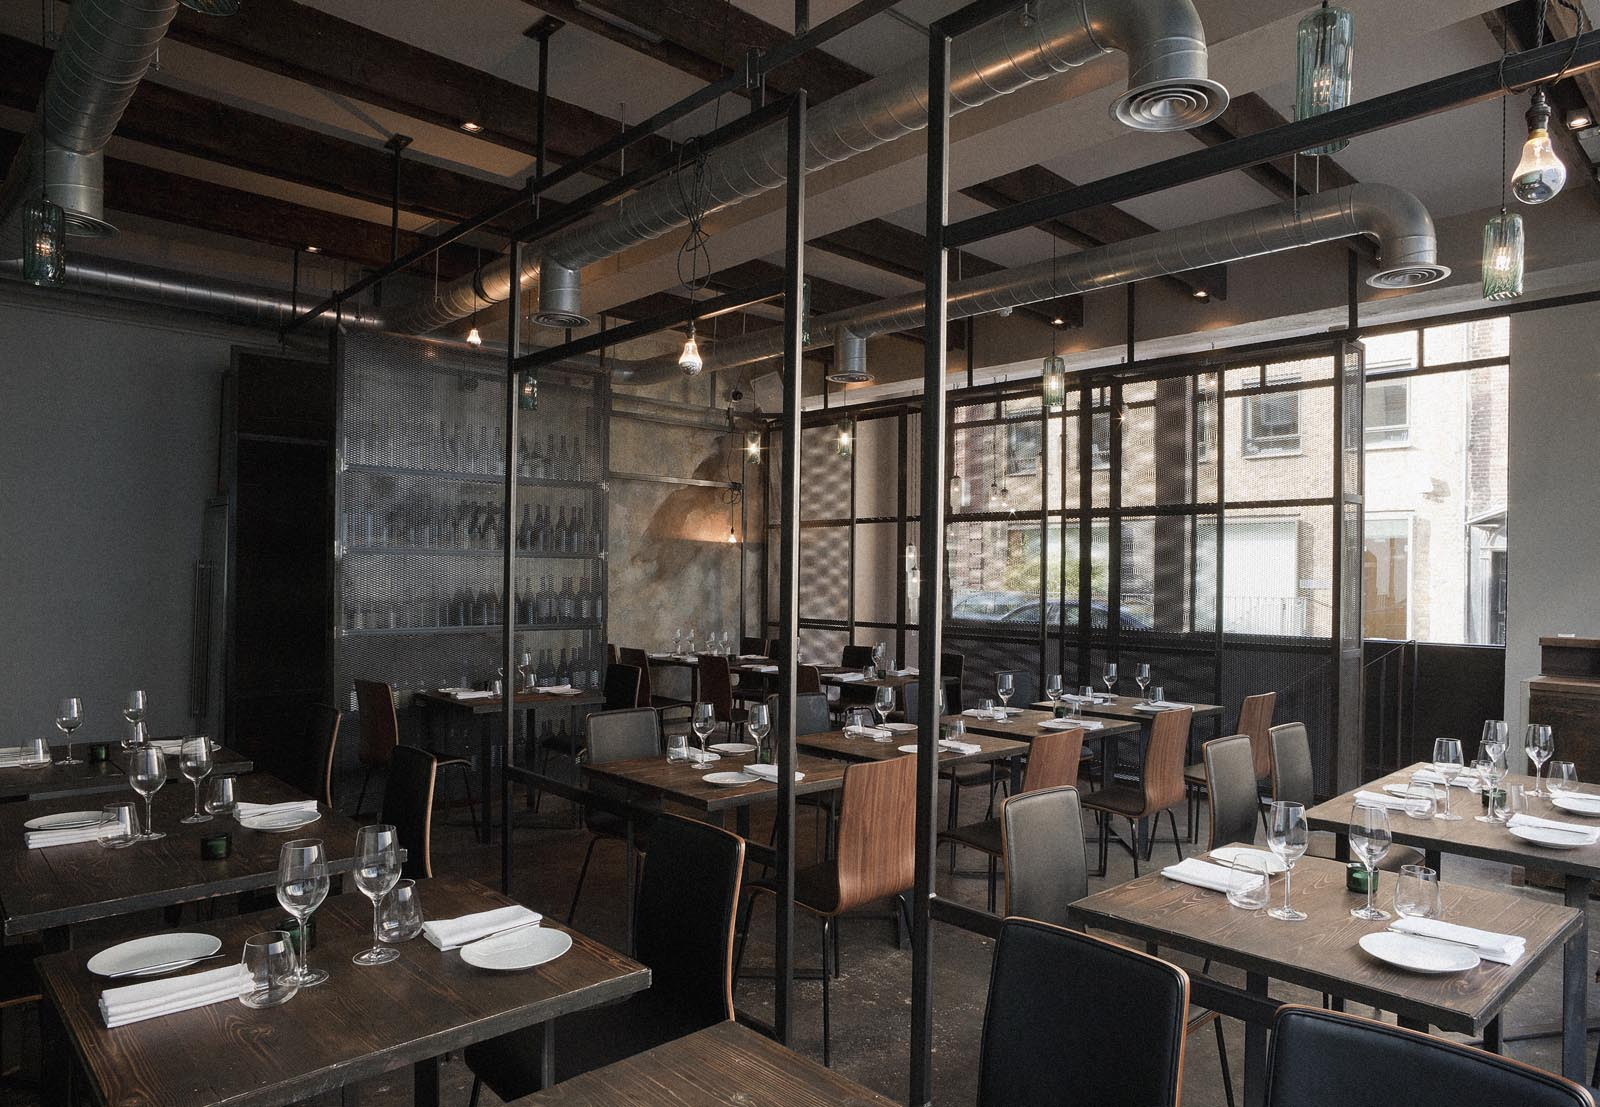 industrial-environment-restaurant-interior-design2.jpg